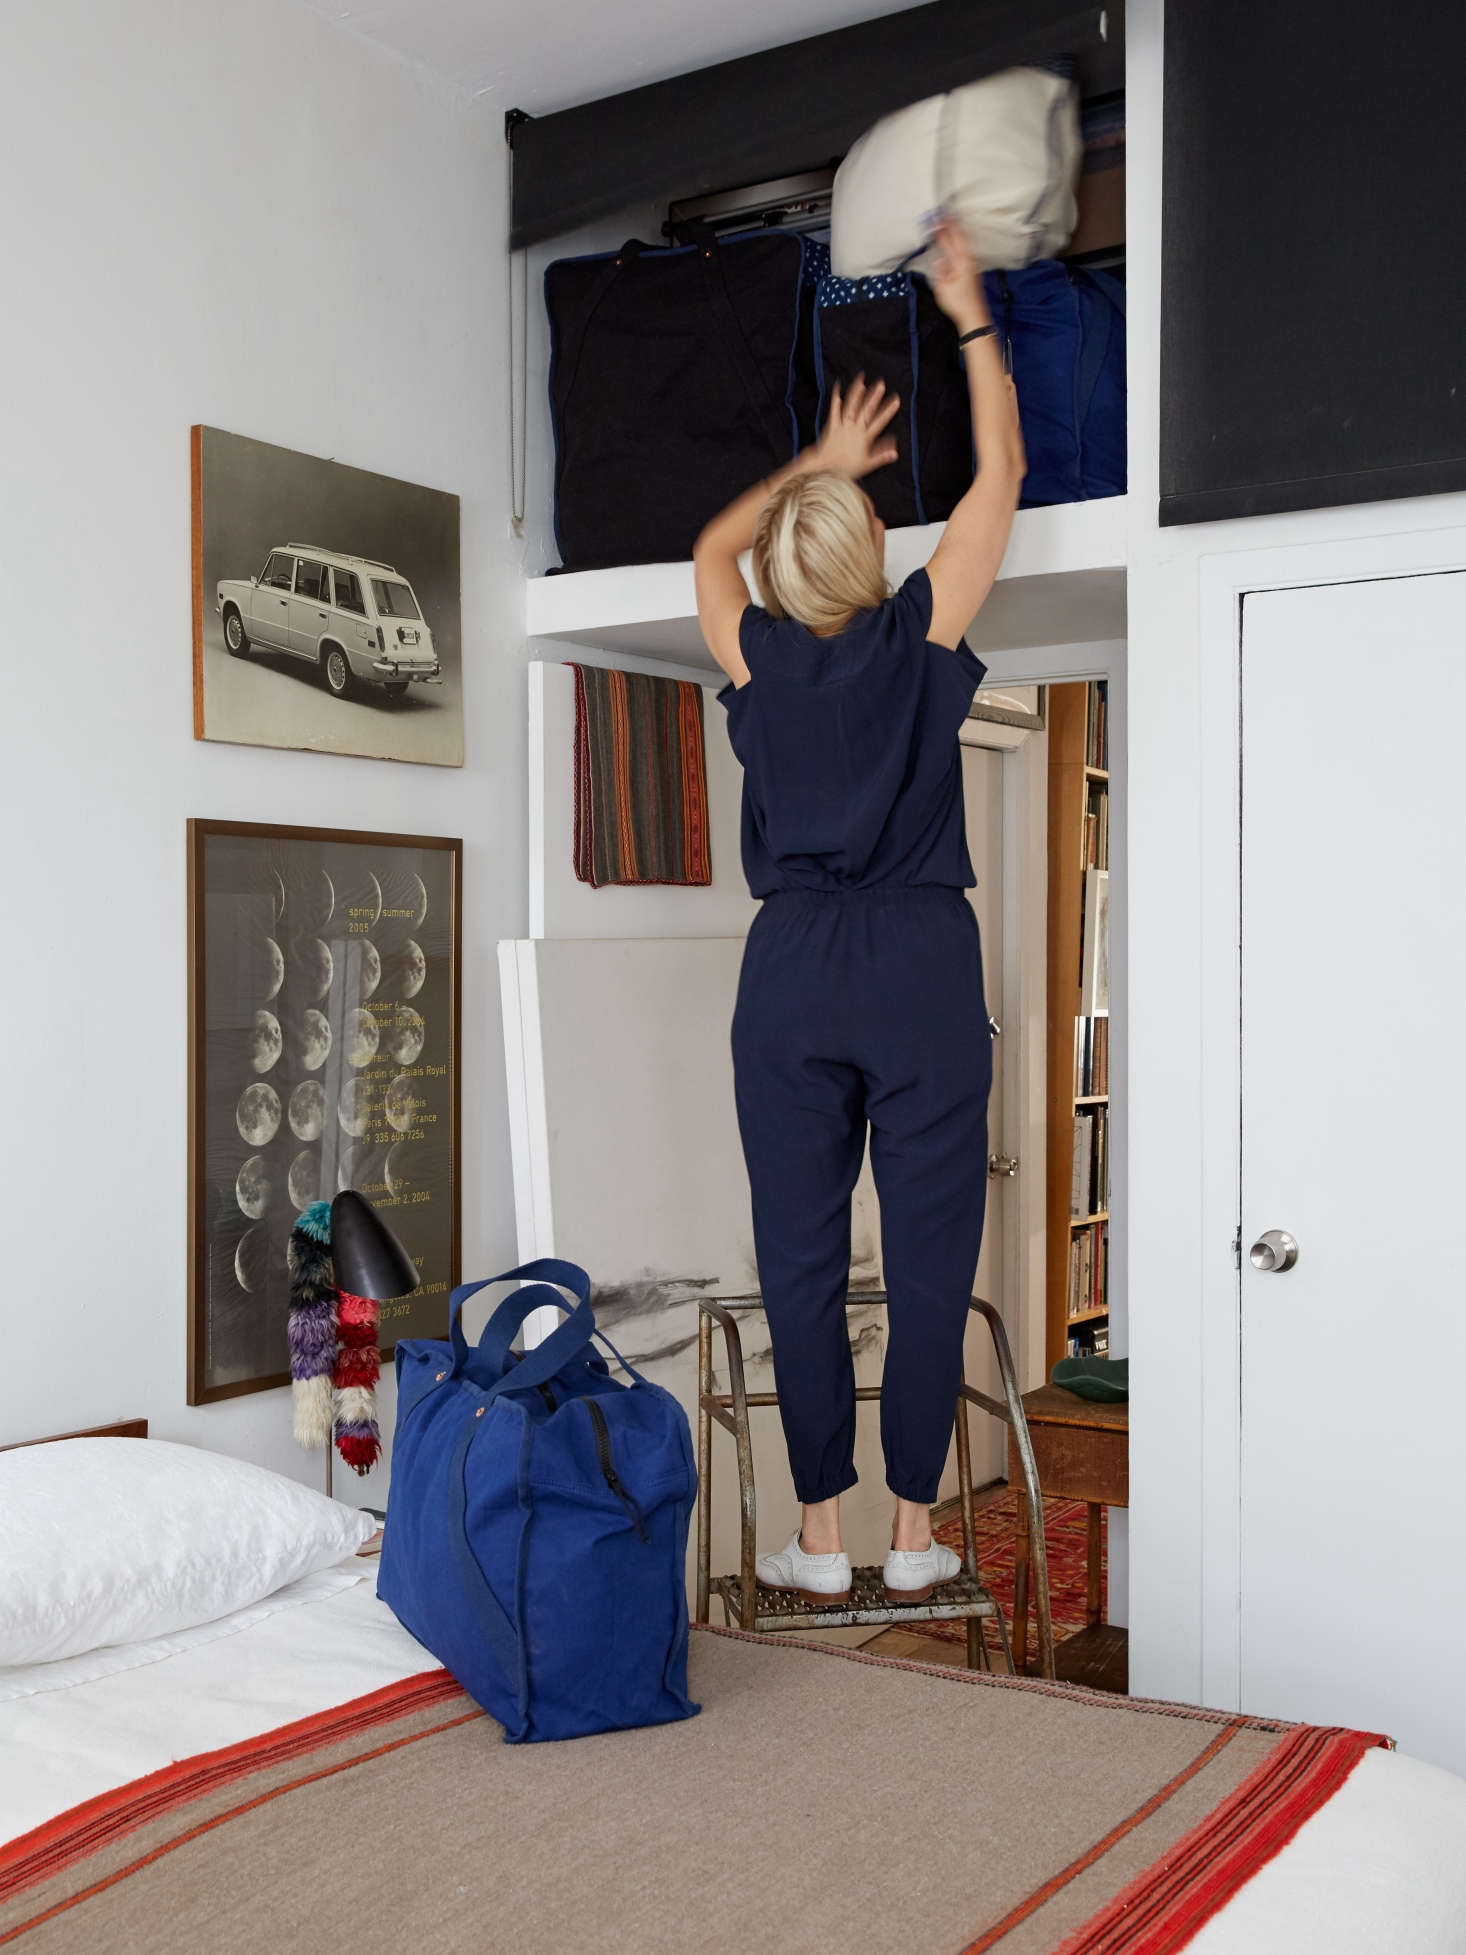 Small-space solutions: Over-the-closet loft storage in a small bedroom